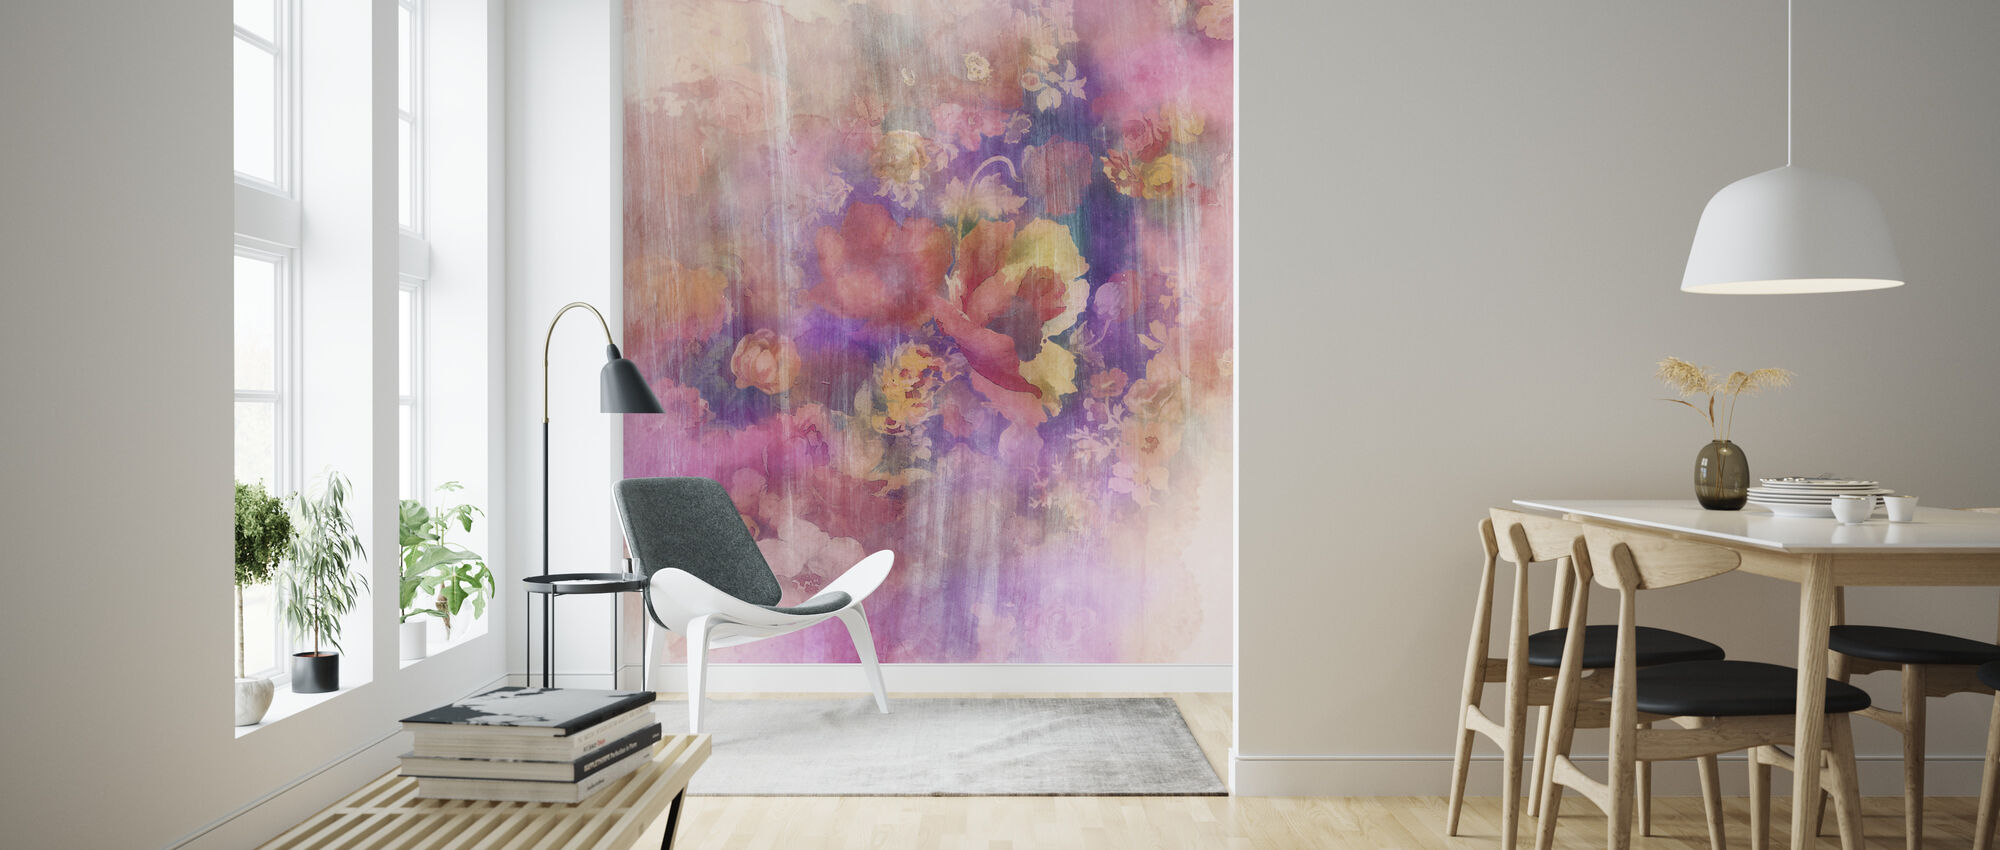 Smokey Floral April - Behang - Woonkamer